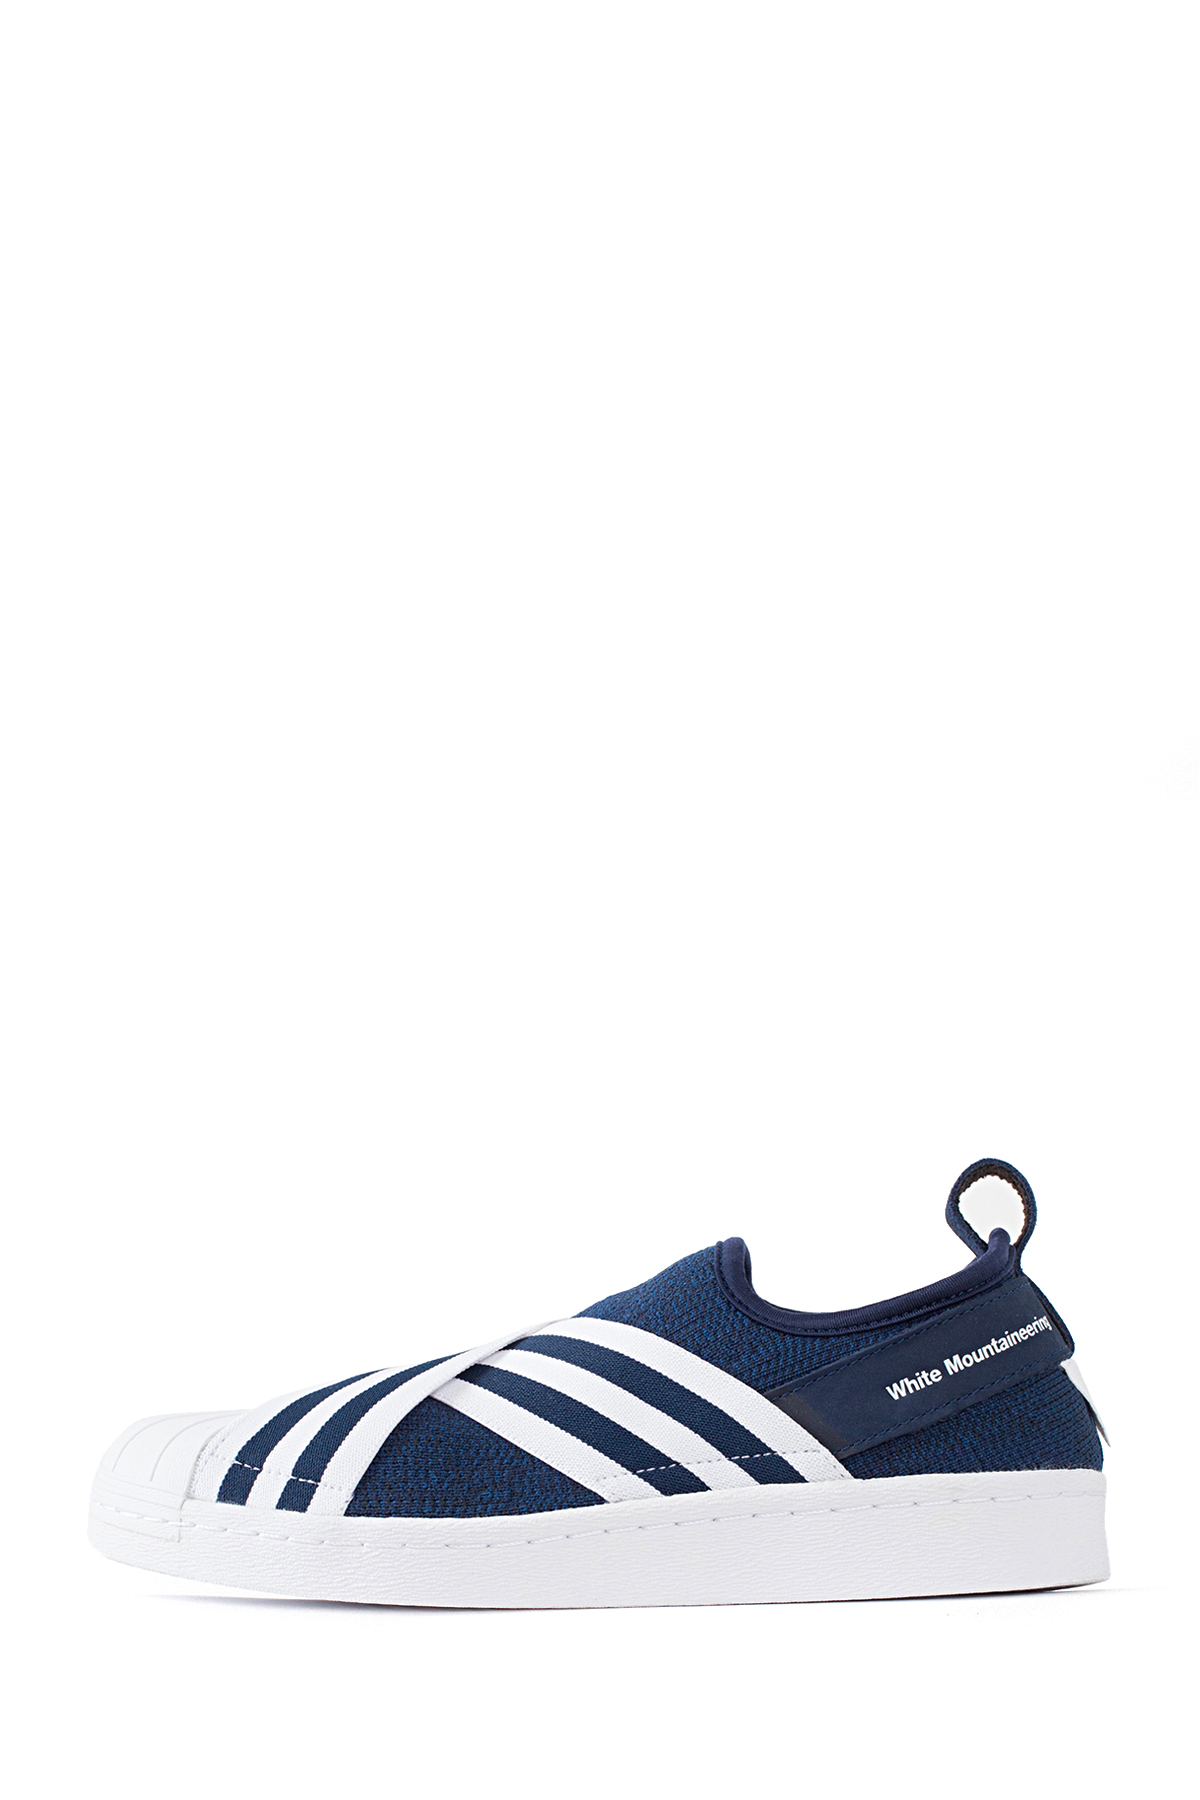 WM x adidas Originals : SUPERSTAR SLIP-ON (Navy)